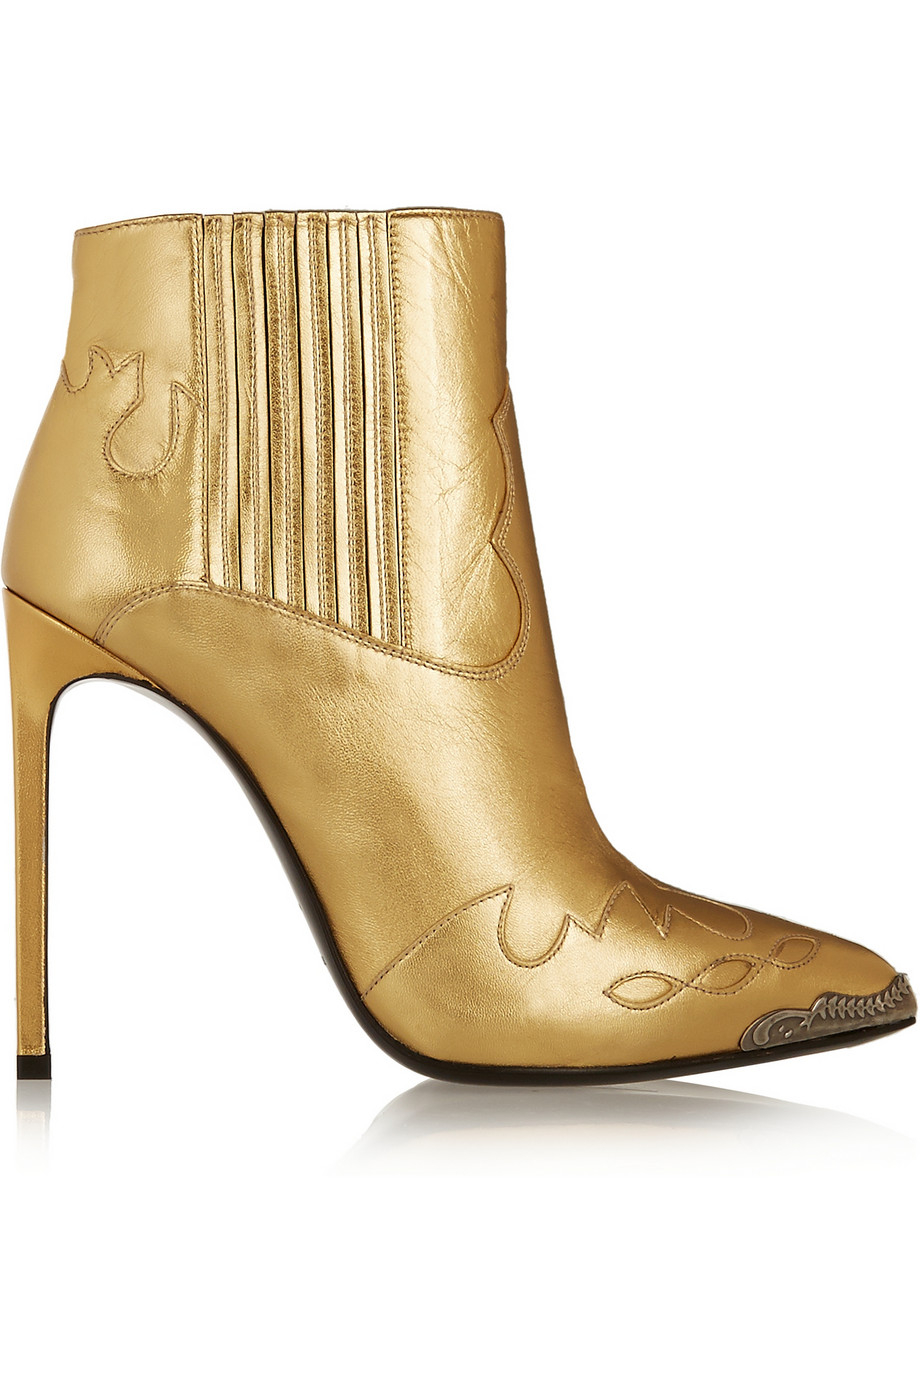 Metallic Leather Boots : Lyst saint laurent paris metallic leather ankle boots in